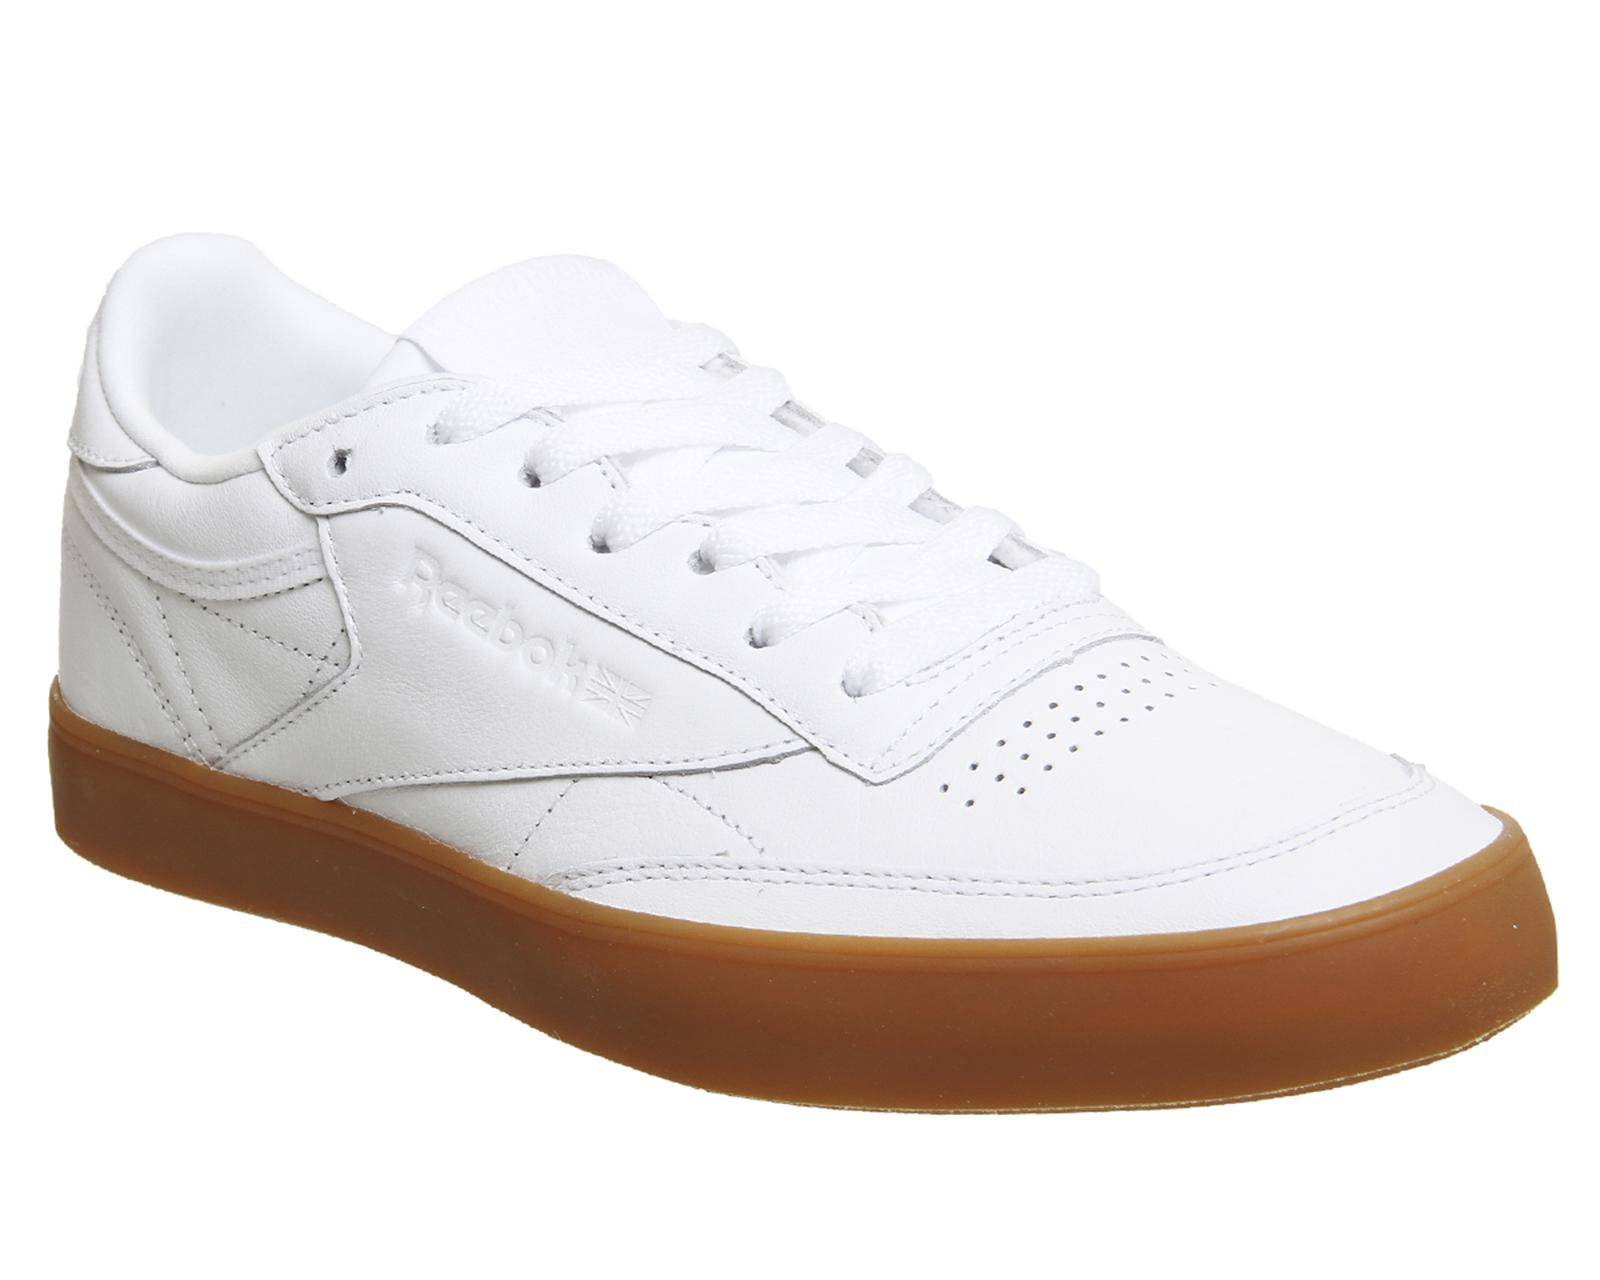 099e07bb755 Reebok Club C 85 Fvs Trainers in White - Lyst